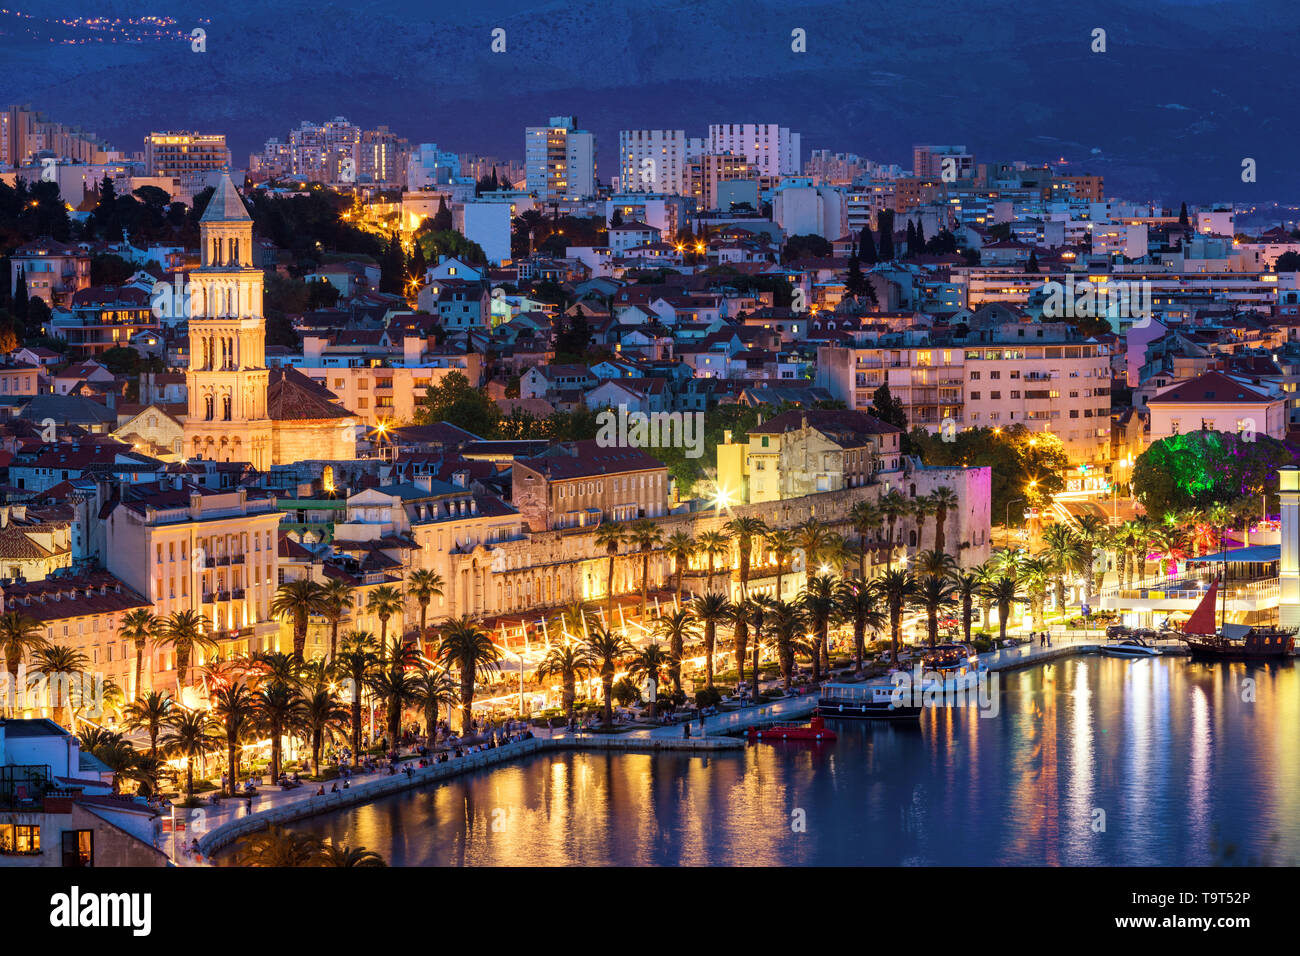 Amazing Split city waterfront panorama at blue hour, Dalmatia, Europe. Roman Palace of the Emperor Diocletian and tower of Saint Domnius cathedral. Sp - Stock Image